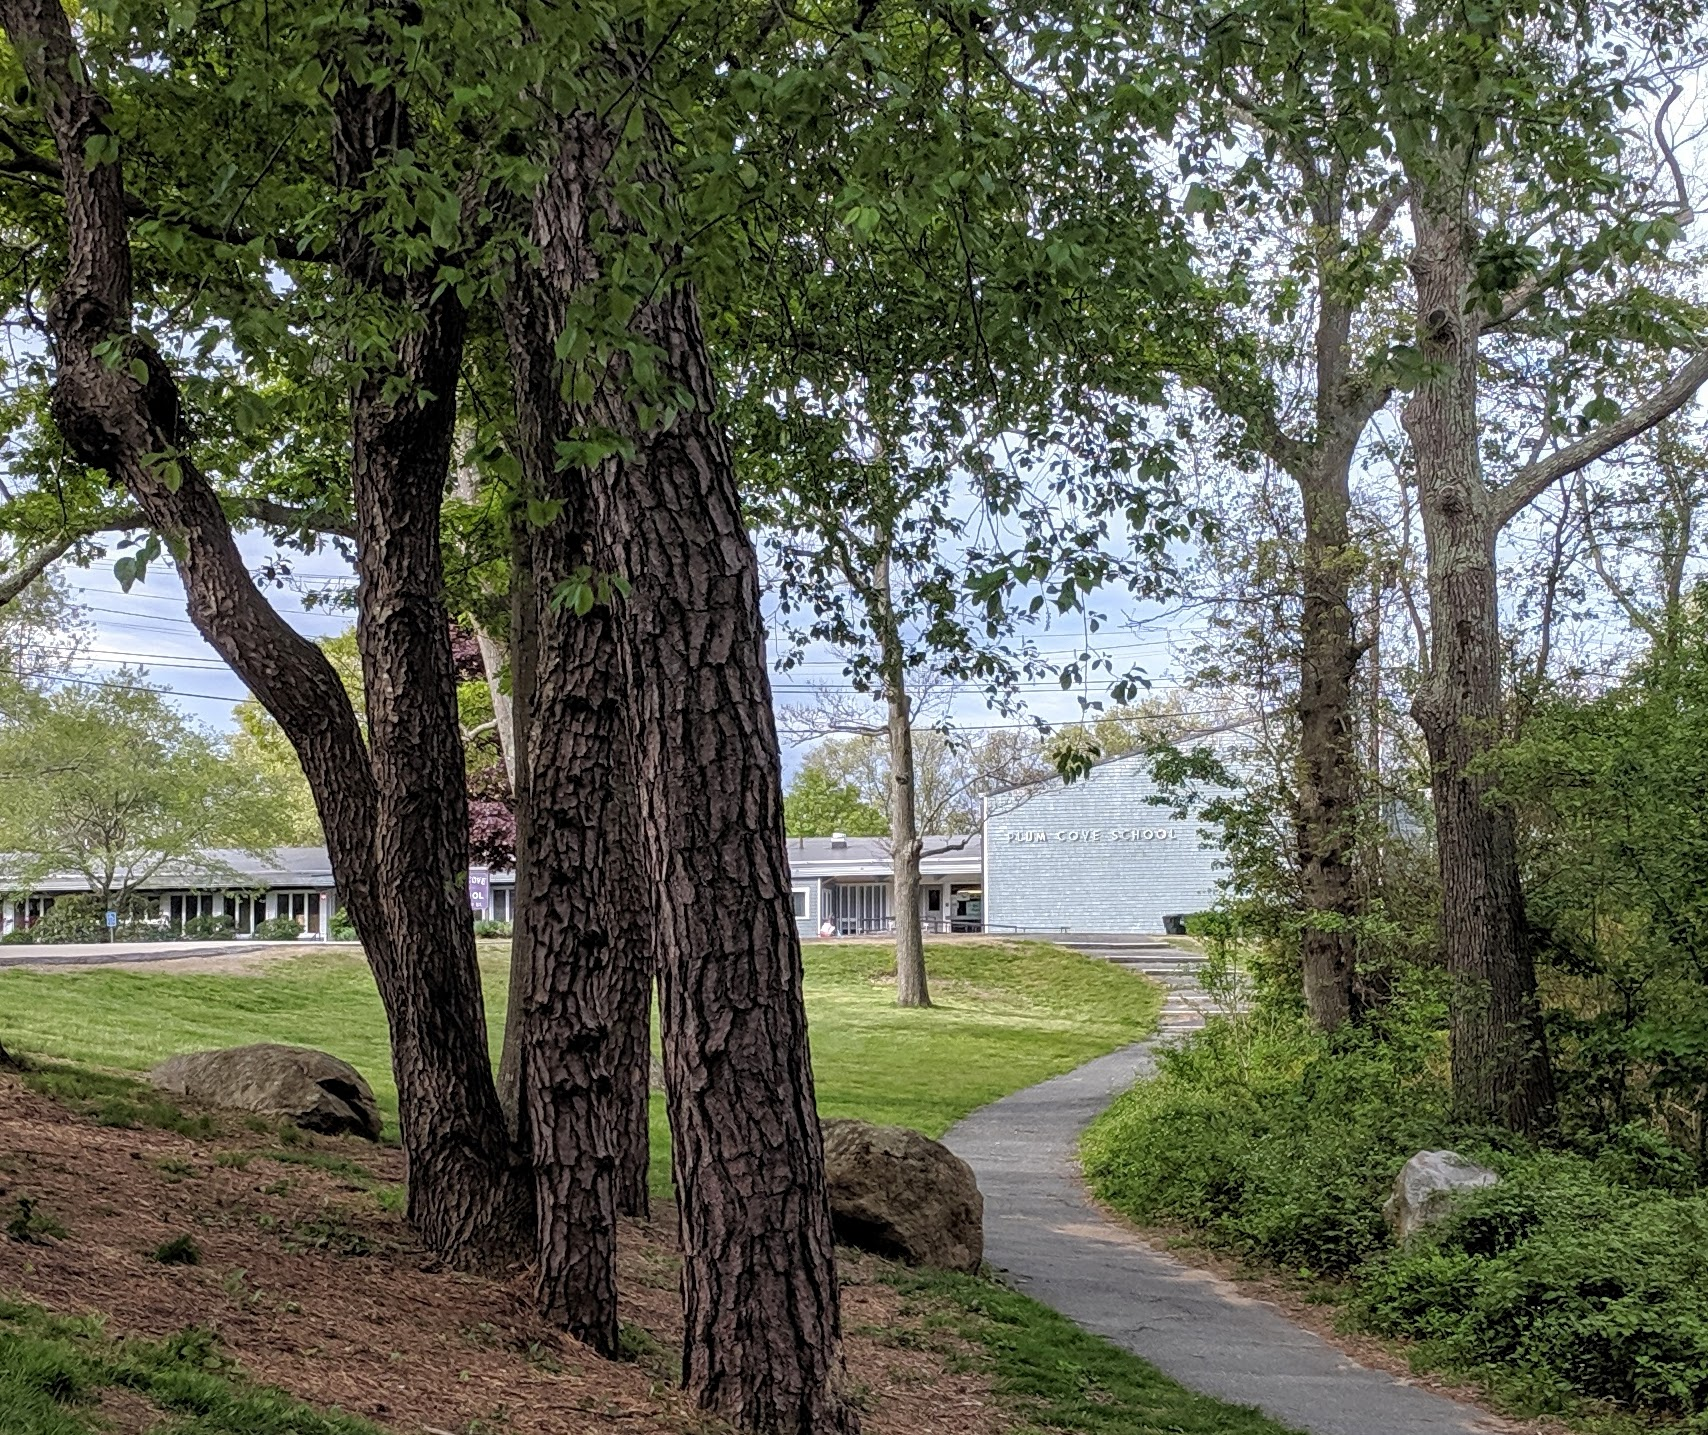 DON MONELL ARCHITECT_ Plum Cove school and landscape design_built in 1966_ Gloucester MA_20190523_©c ryan _073333